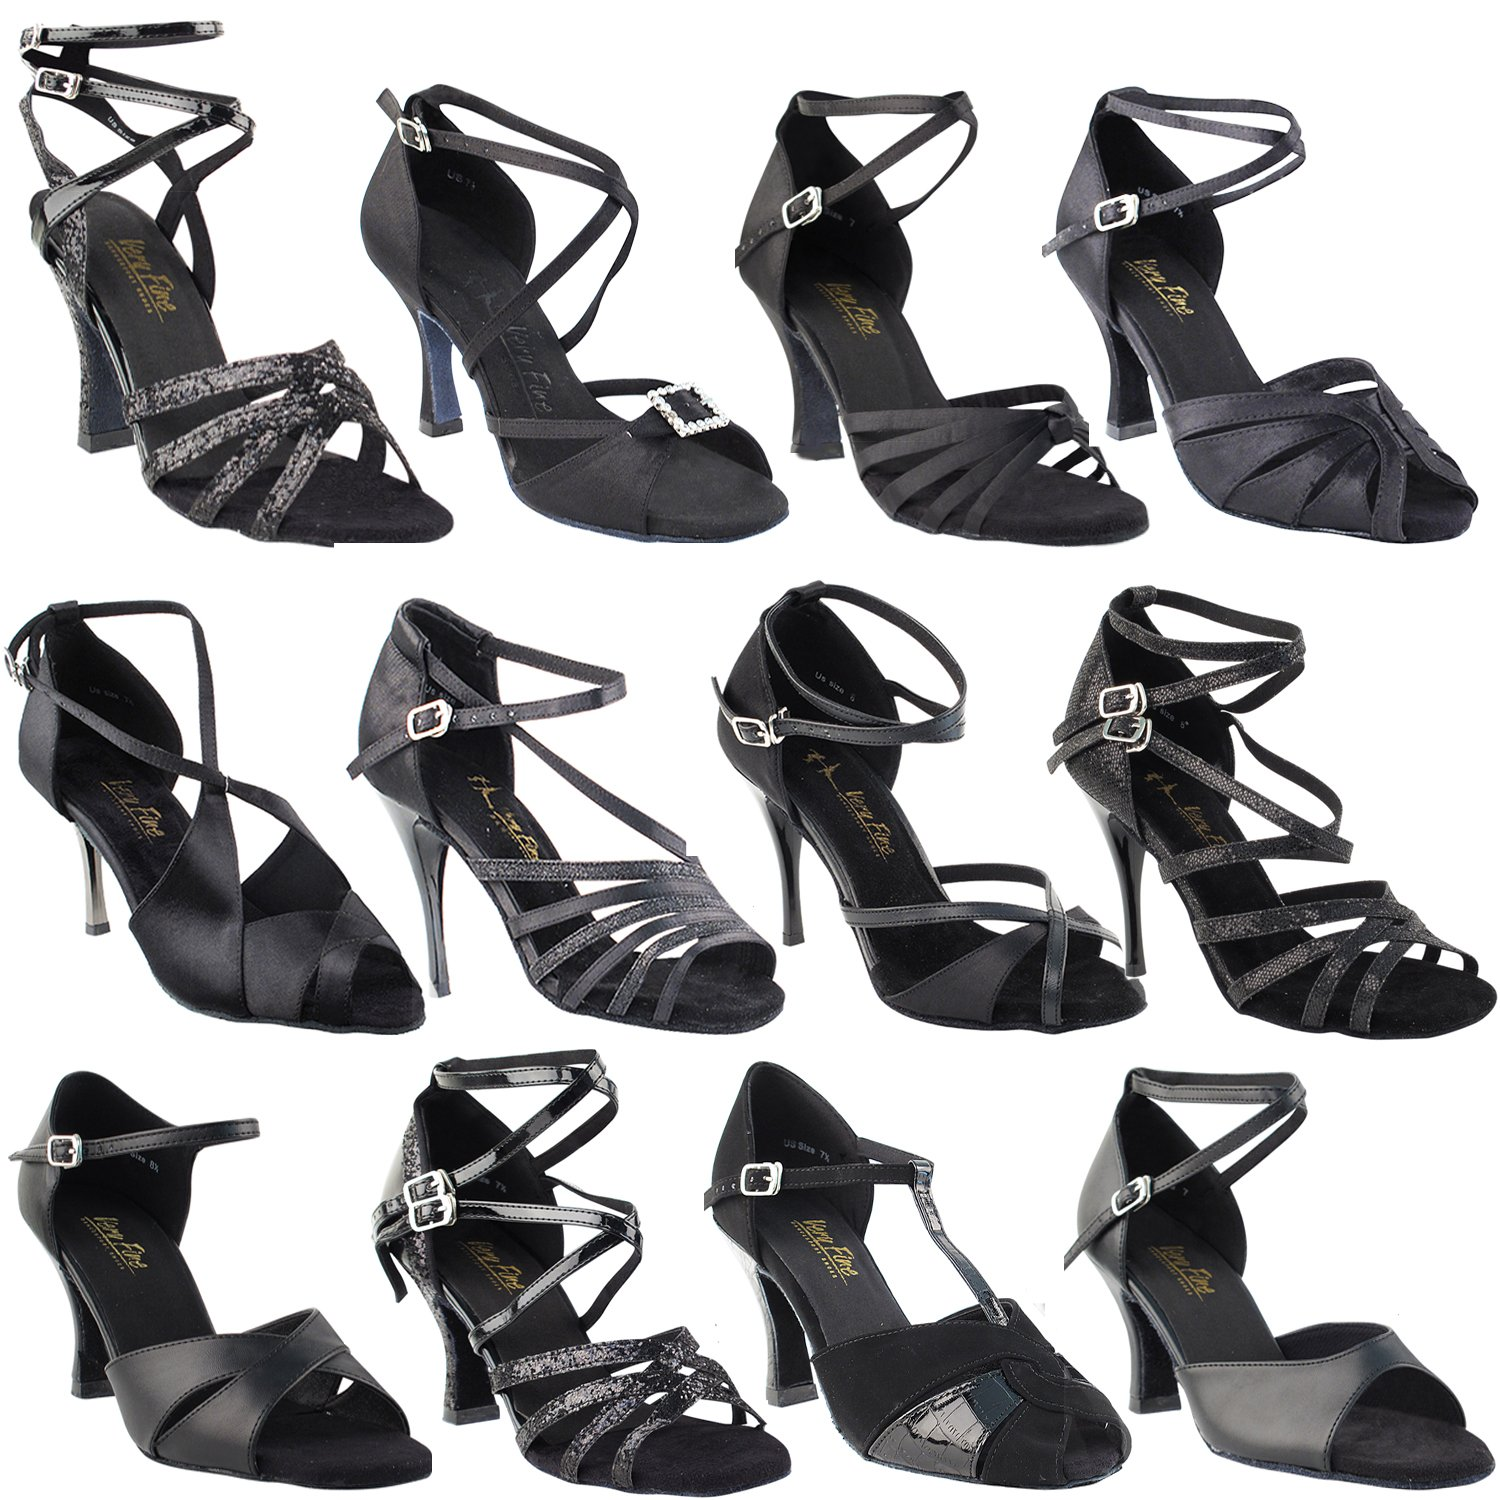 Gold Pigeon Shoes 50 Shades of Black: 5009, Black Sparkle, 3'' High Heel, Size 9